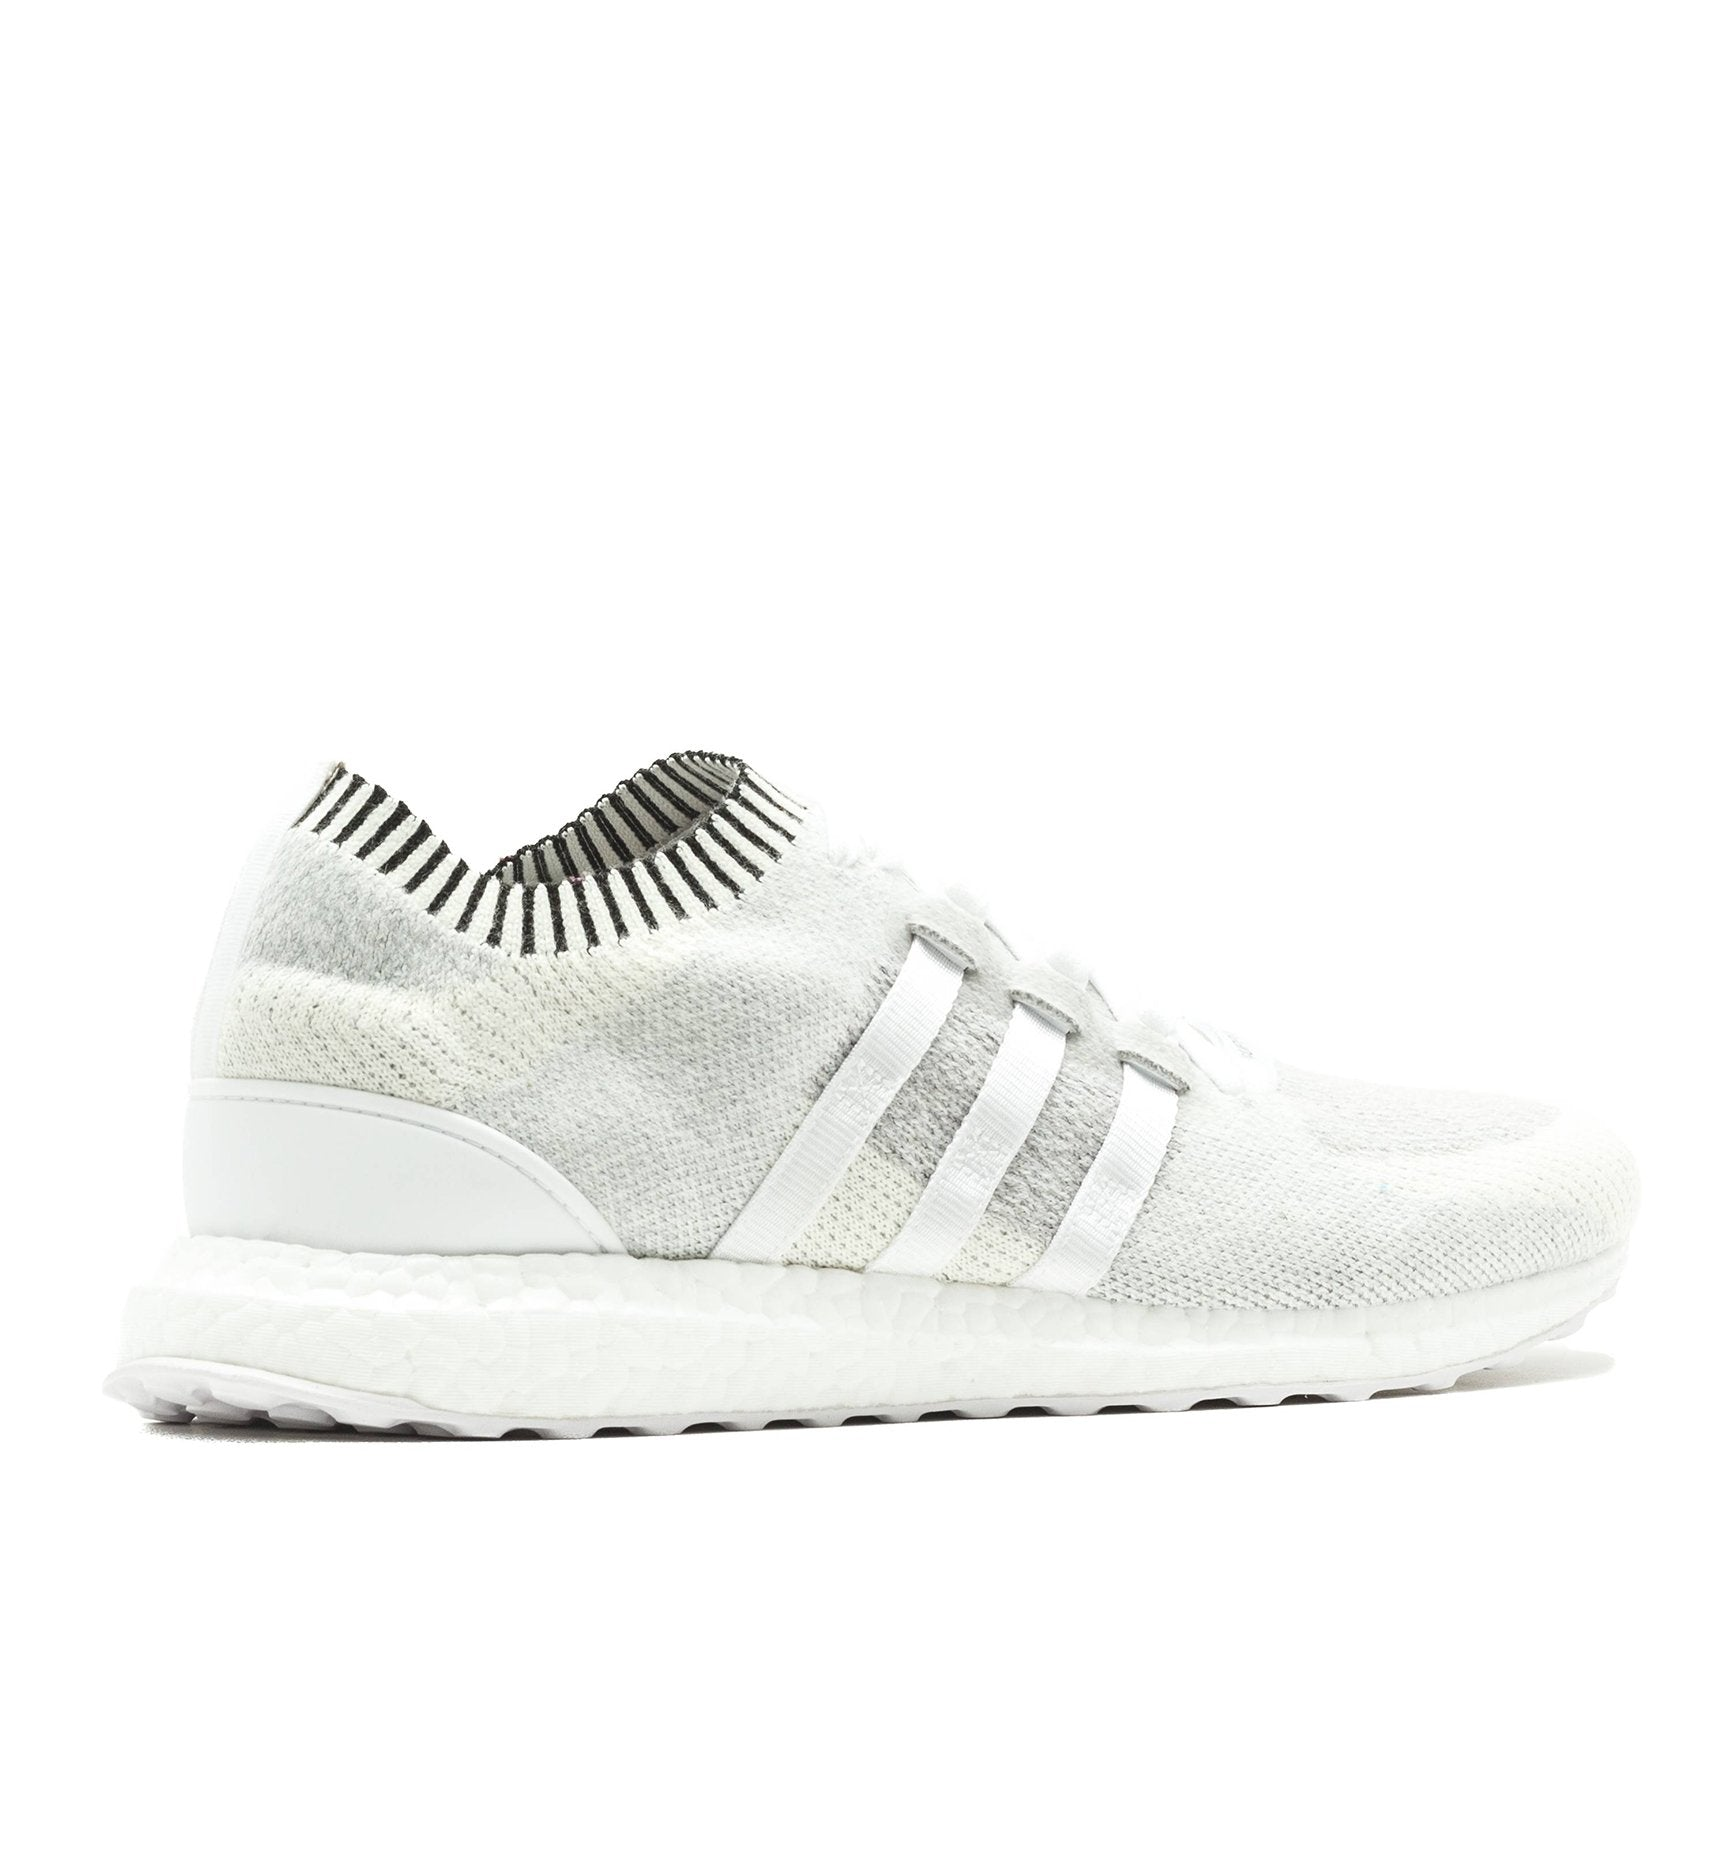 adidas EQT Support Ultra PK - Vintage White